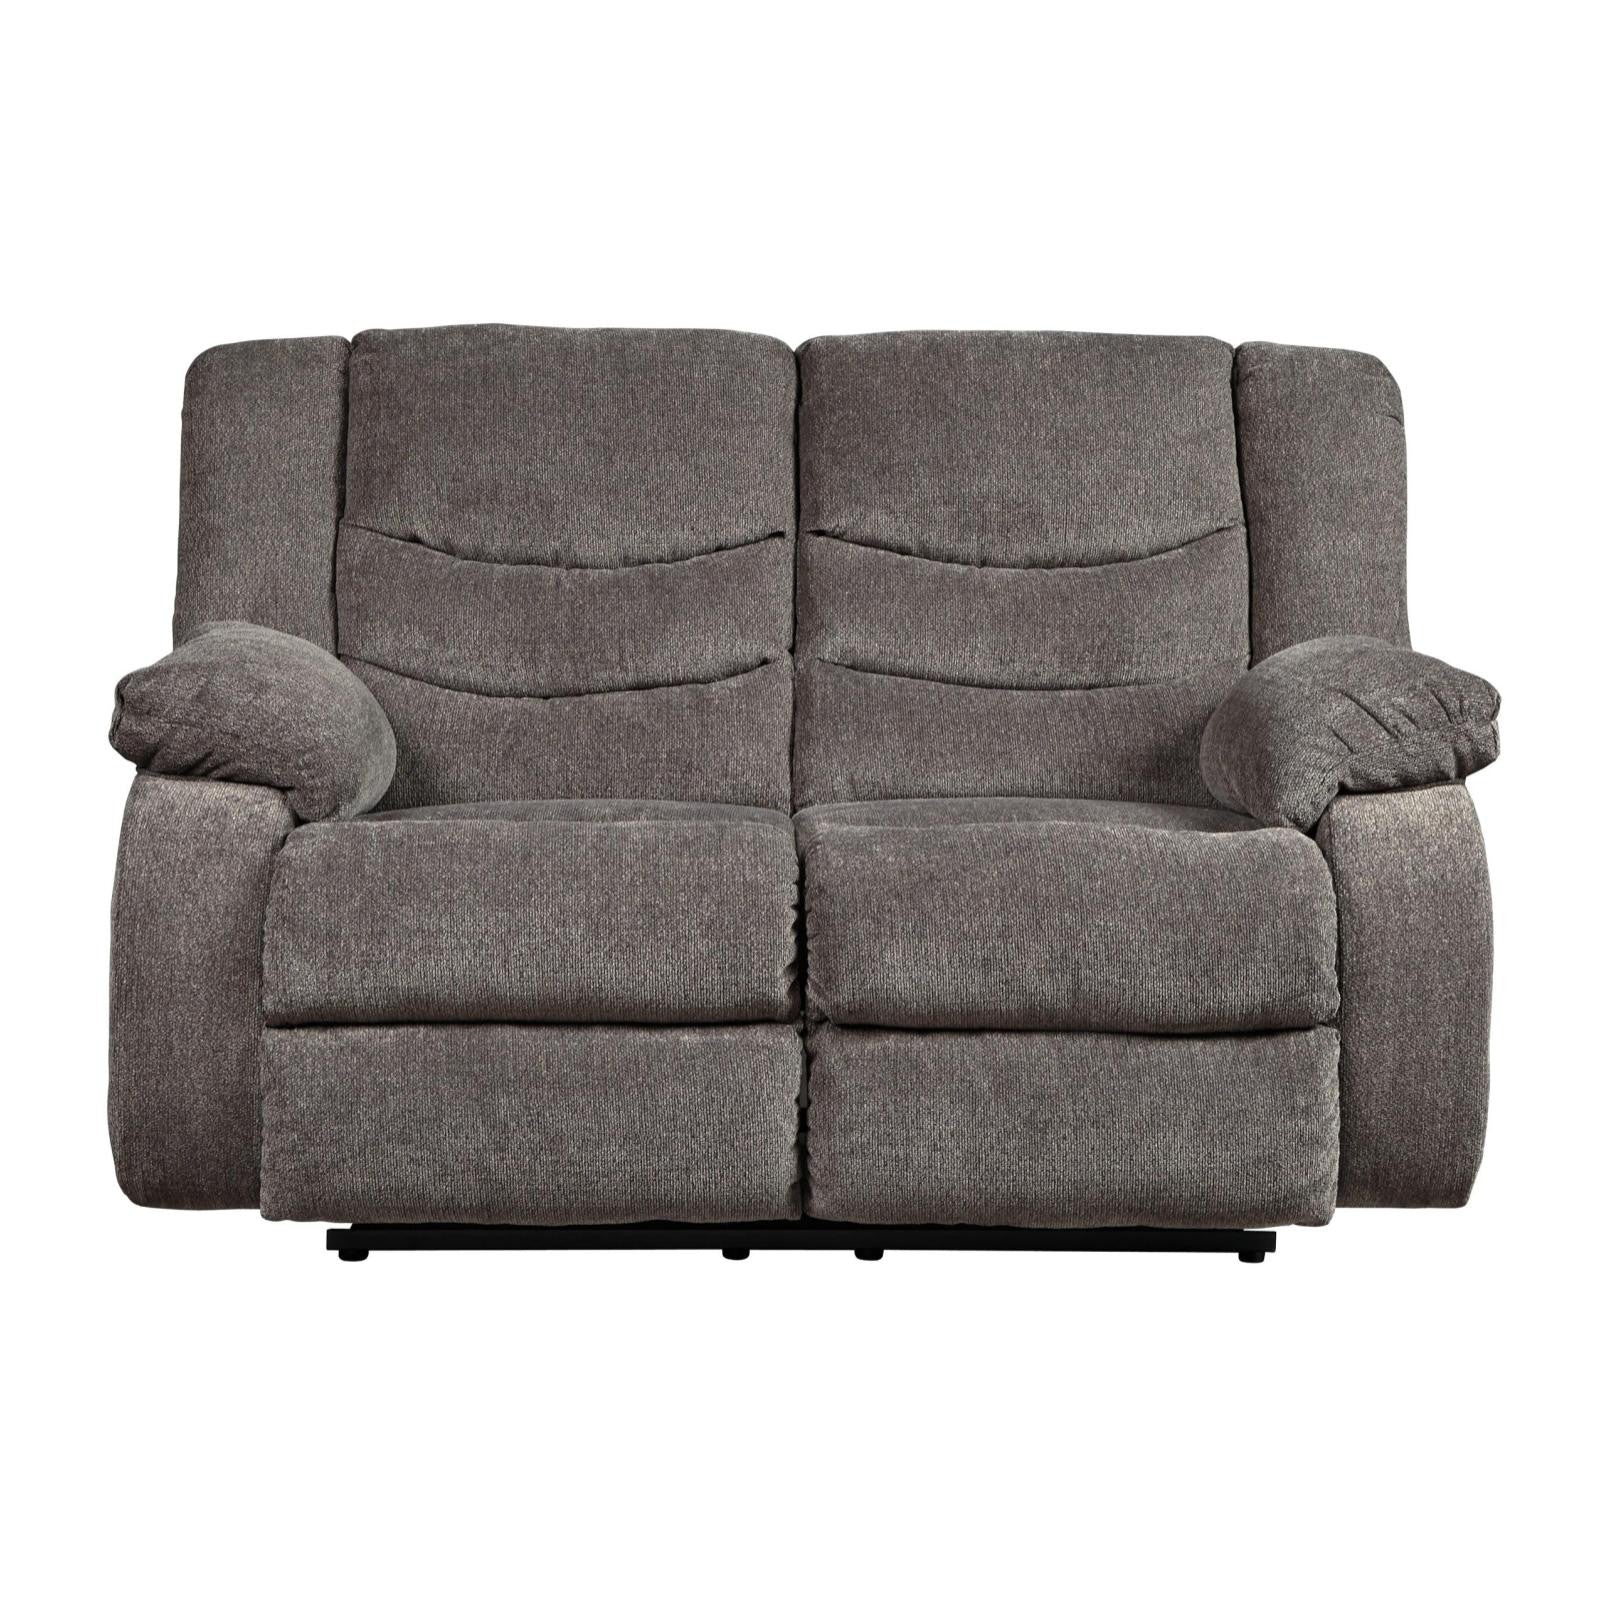 Tulen Reclining Loveseat LOVESEAT - Adams Furniture ...  sc 1 st  Adams Furniture & Tulen Reclining Loveseat u2013 Adams Furniture islam-shia.org